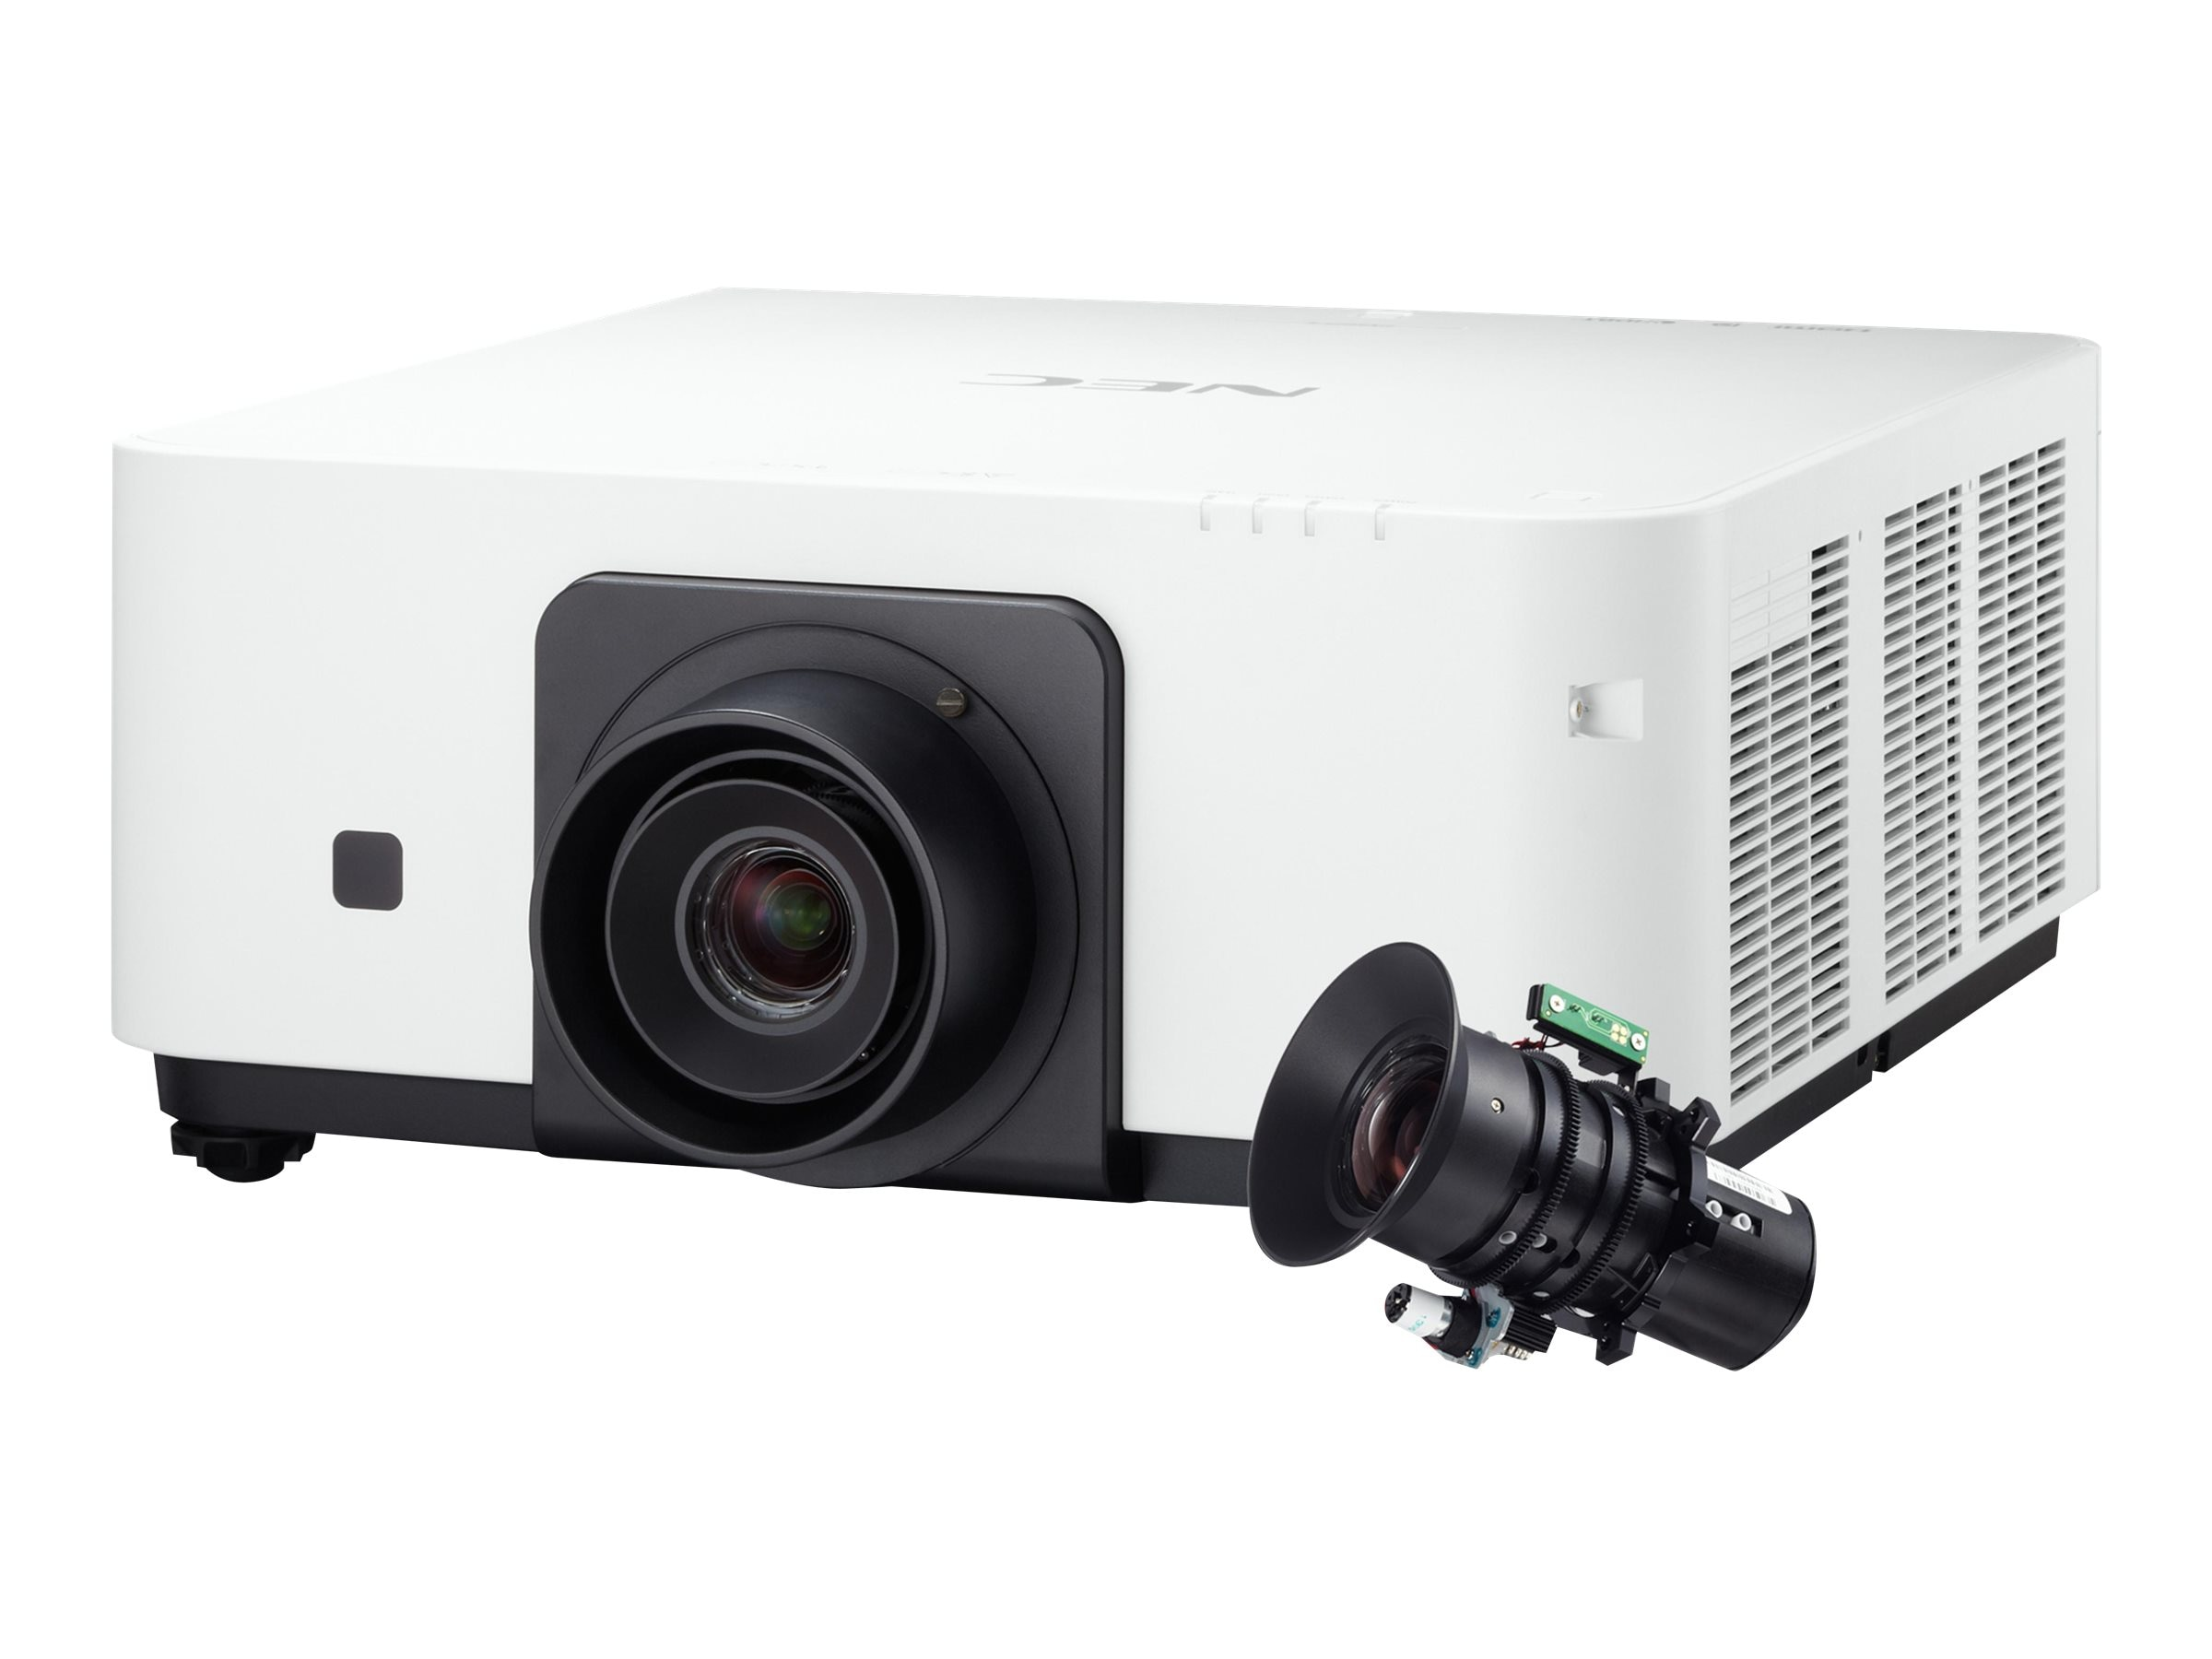 NEC PX602UL WUXGA DLP Projector, 6000 Lumens, White with Zoom Lens